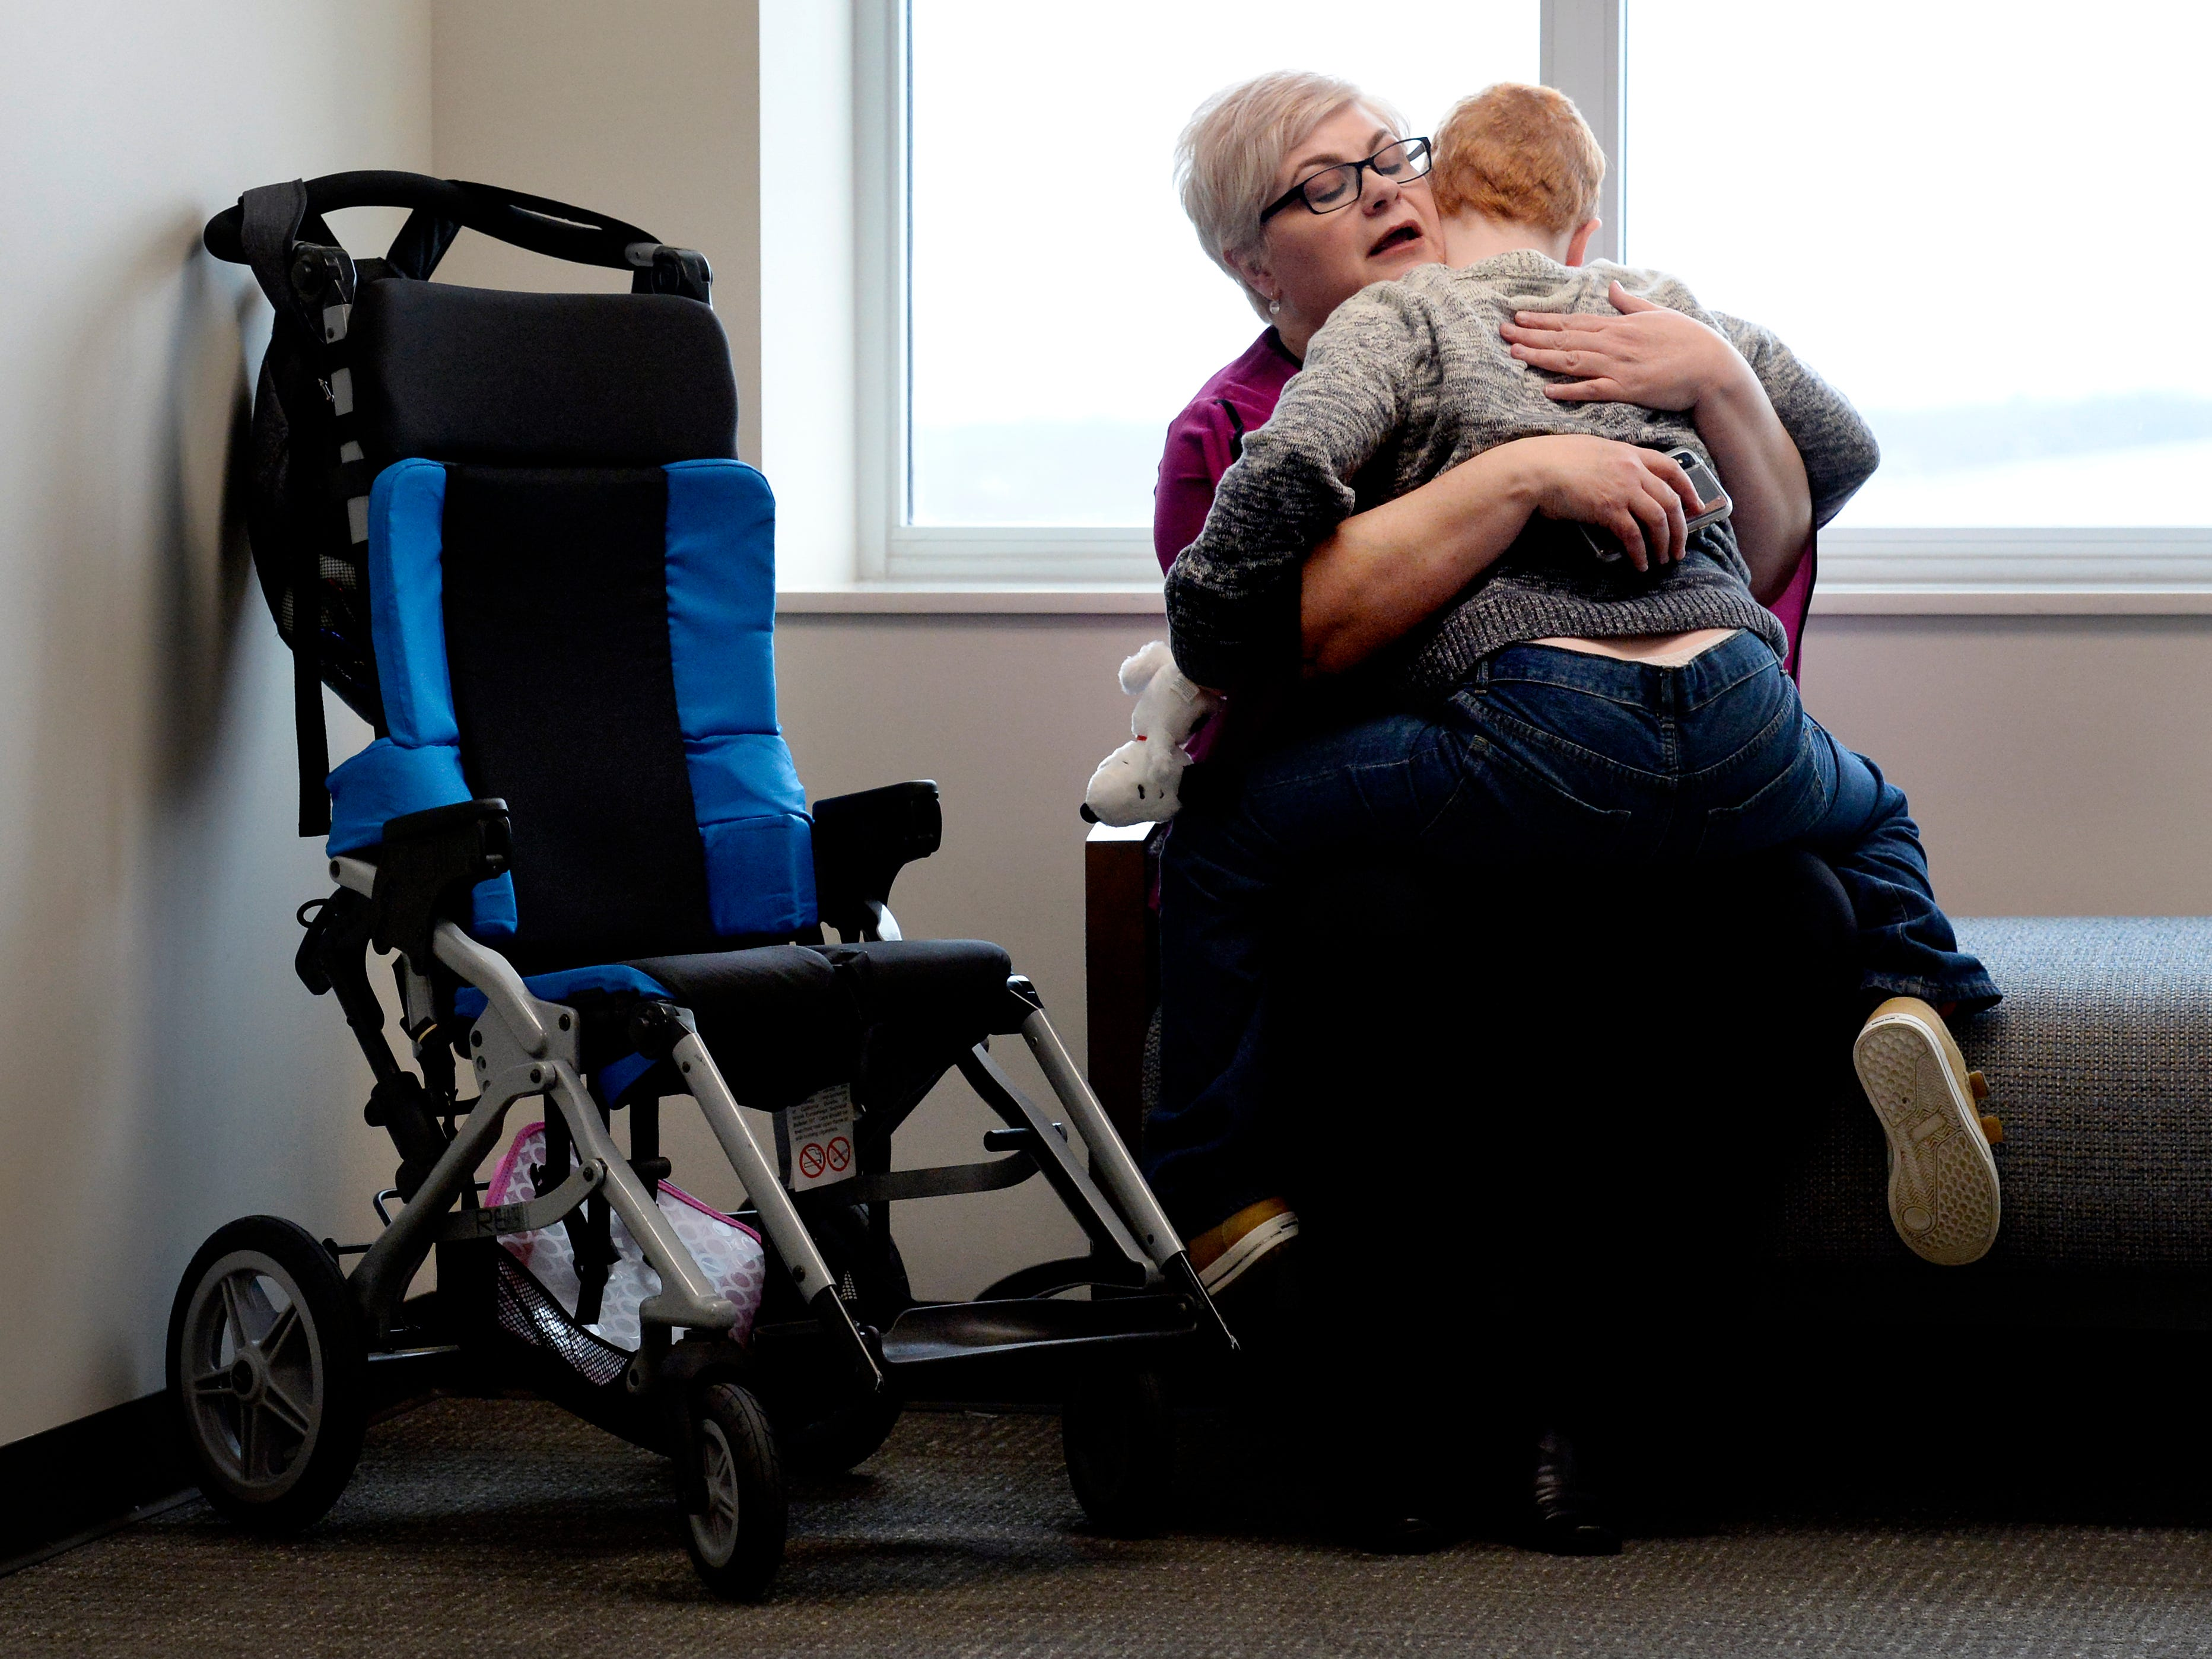 Jennifer Schultz holds onto her son, Hatcher Ryan, 10, who has Down syndrome, as they wait to talk with senators during Disability Day on the Hill on Tuesday, Feb. 12, 2019, in Nashville. Schultz graduated from college in December and wants to work, but she worries that her son might lose services if she makes too much money.